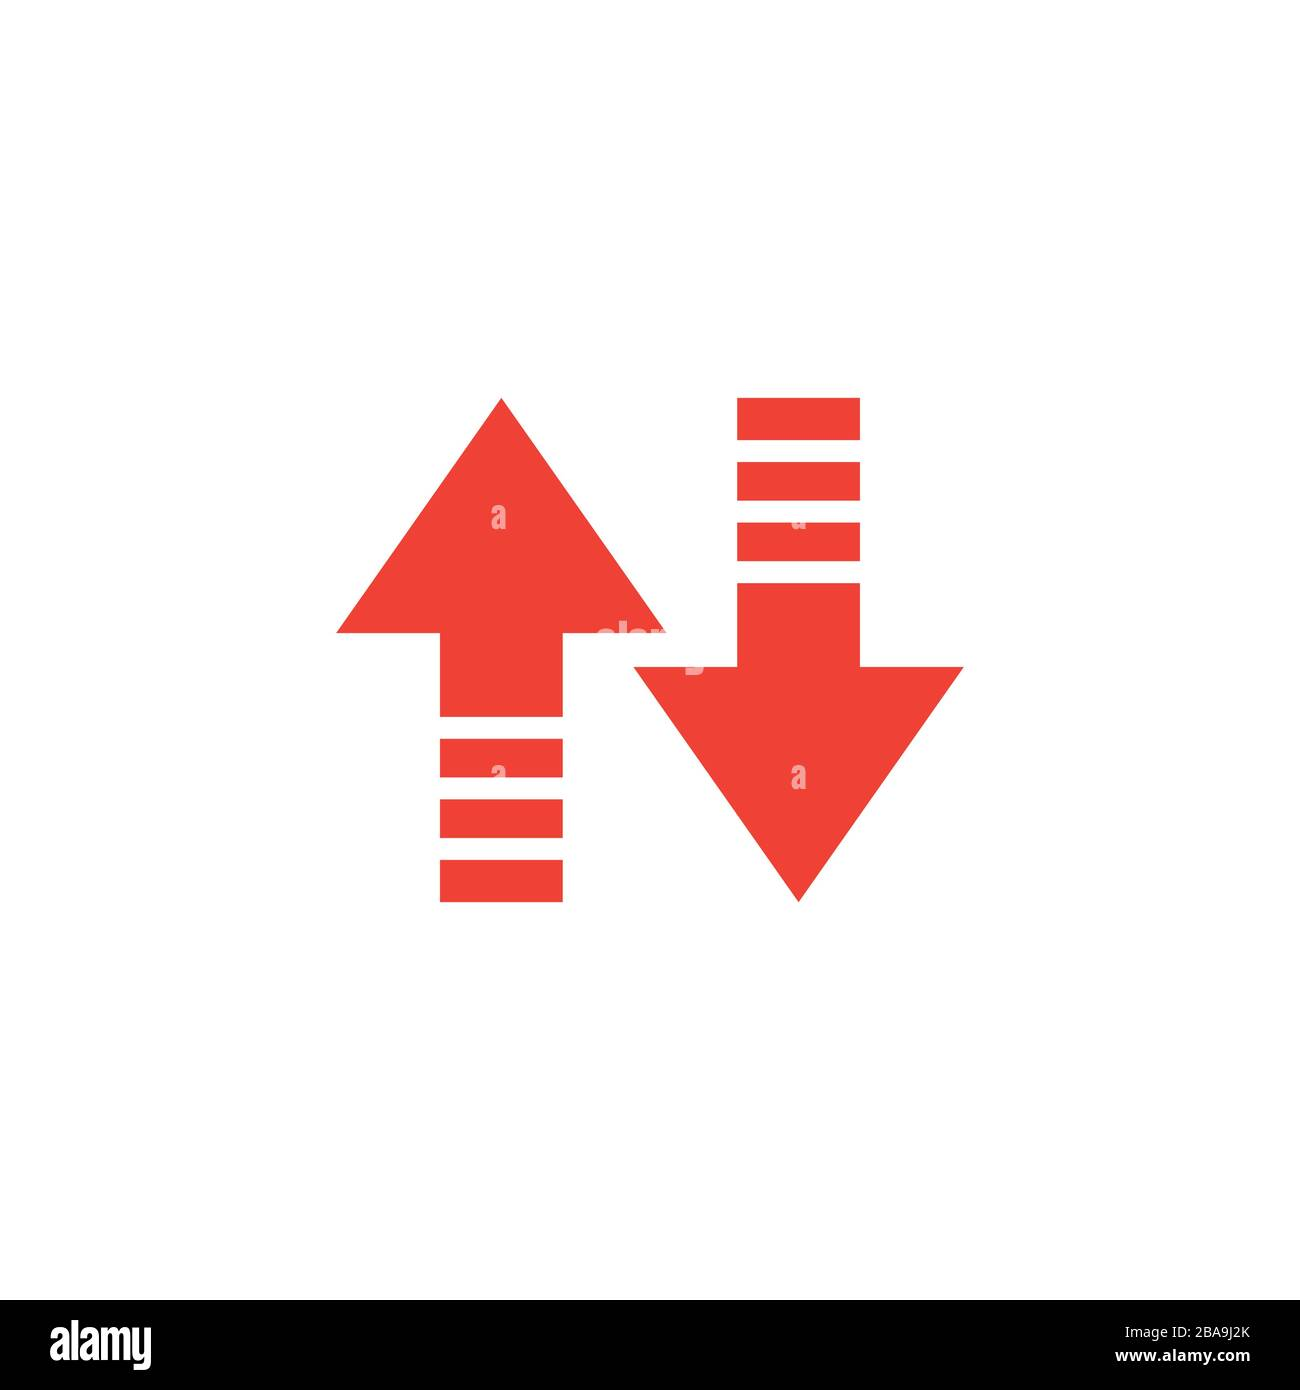 Up-Down Arrow Red Icon On White Background. Red Flat Style Vector Illustration Stock Vector